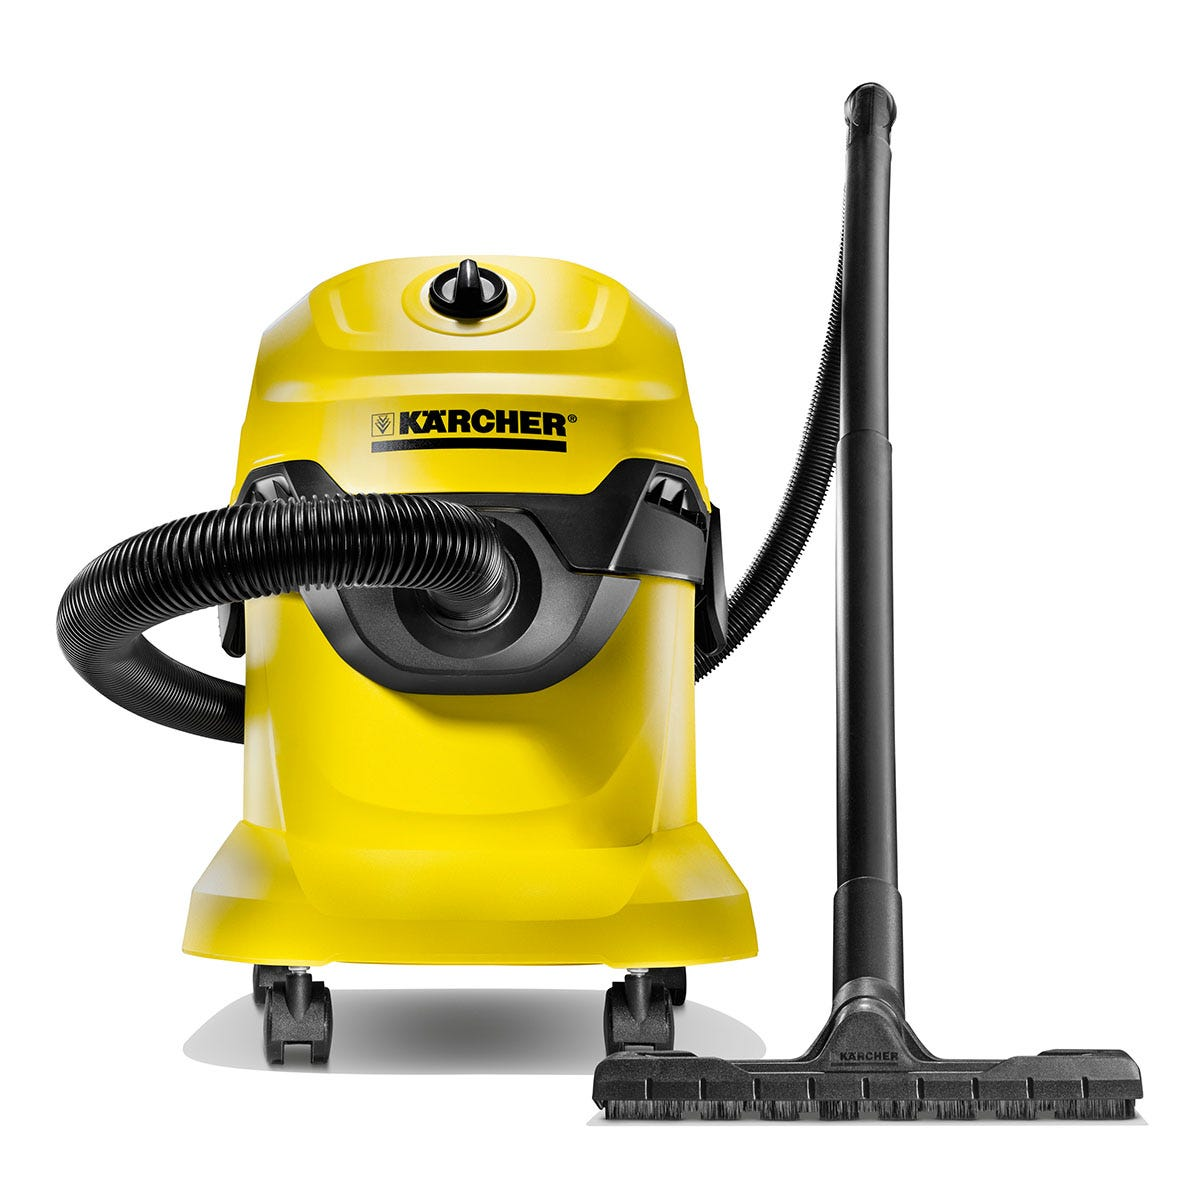 Karcher 13481190 WD 4 Wet and Dry Vacuum Cleaner - Yellow and Black